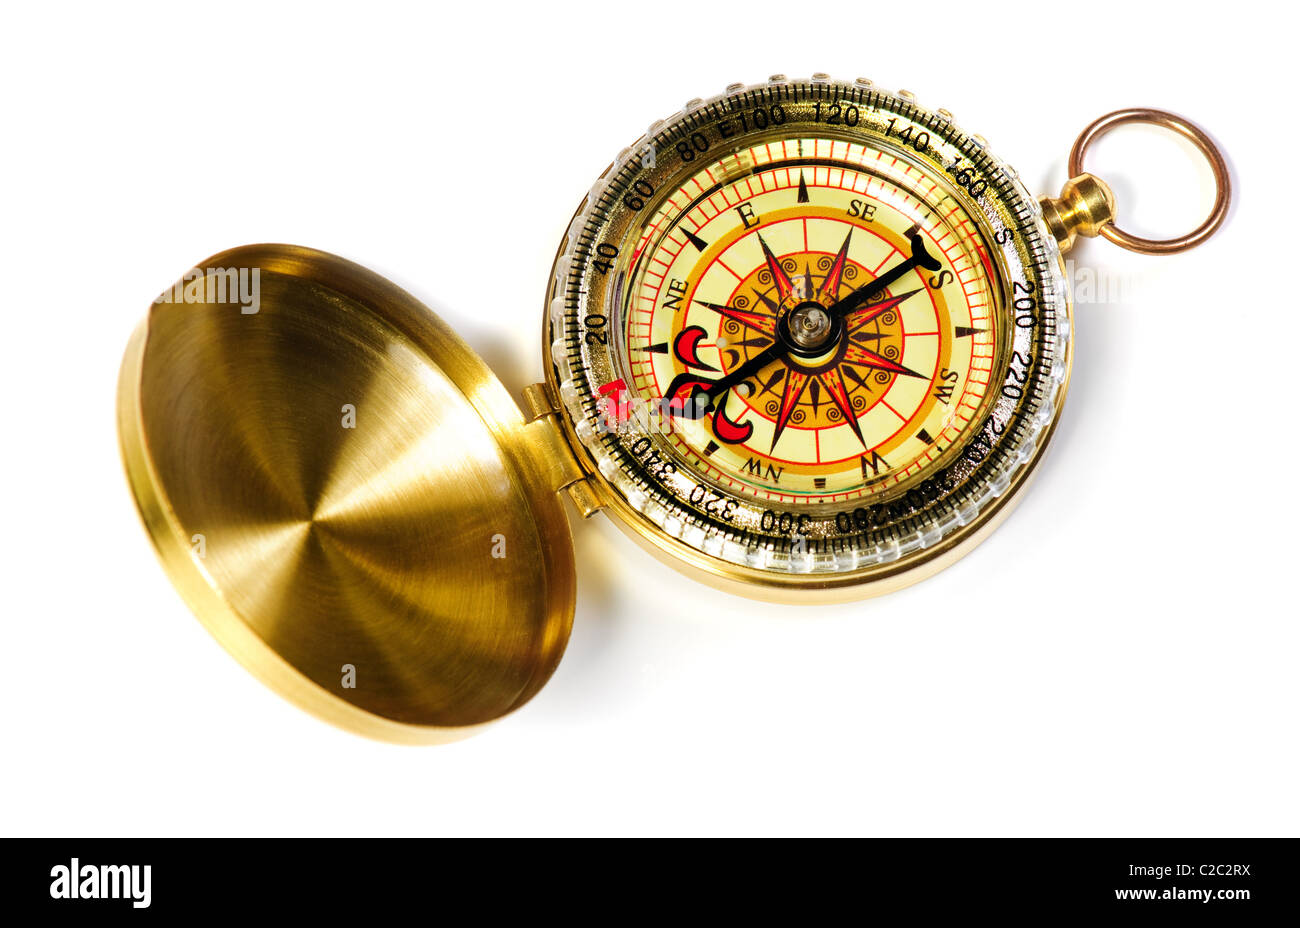 old-fashioned magnetic compass over white background - Stock Image